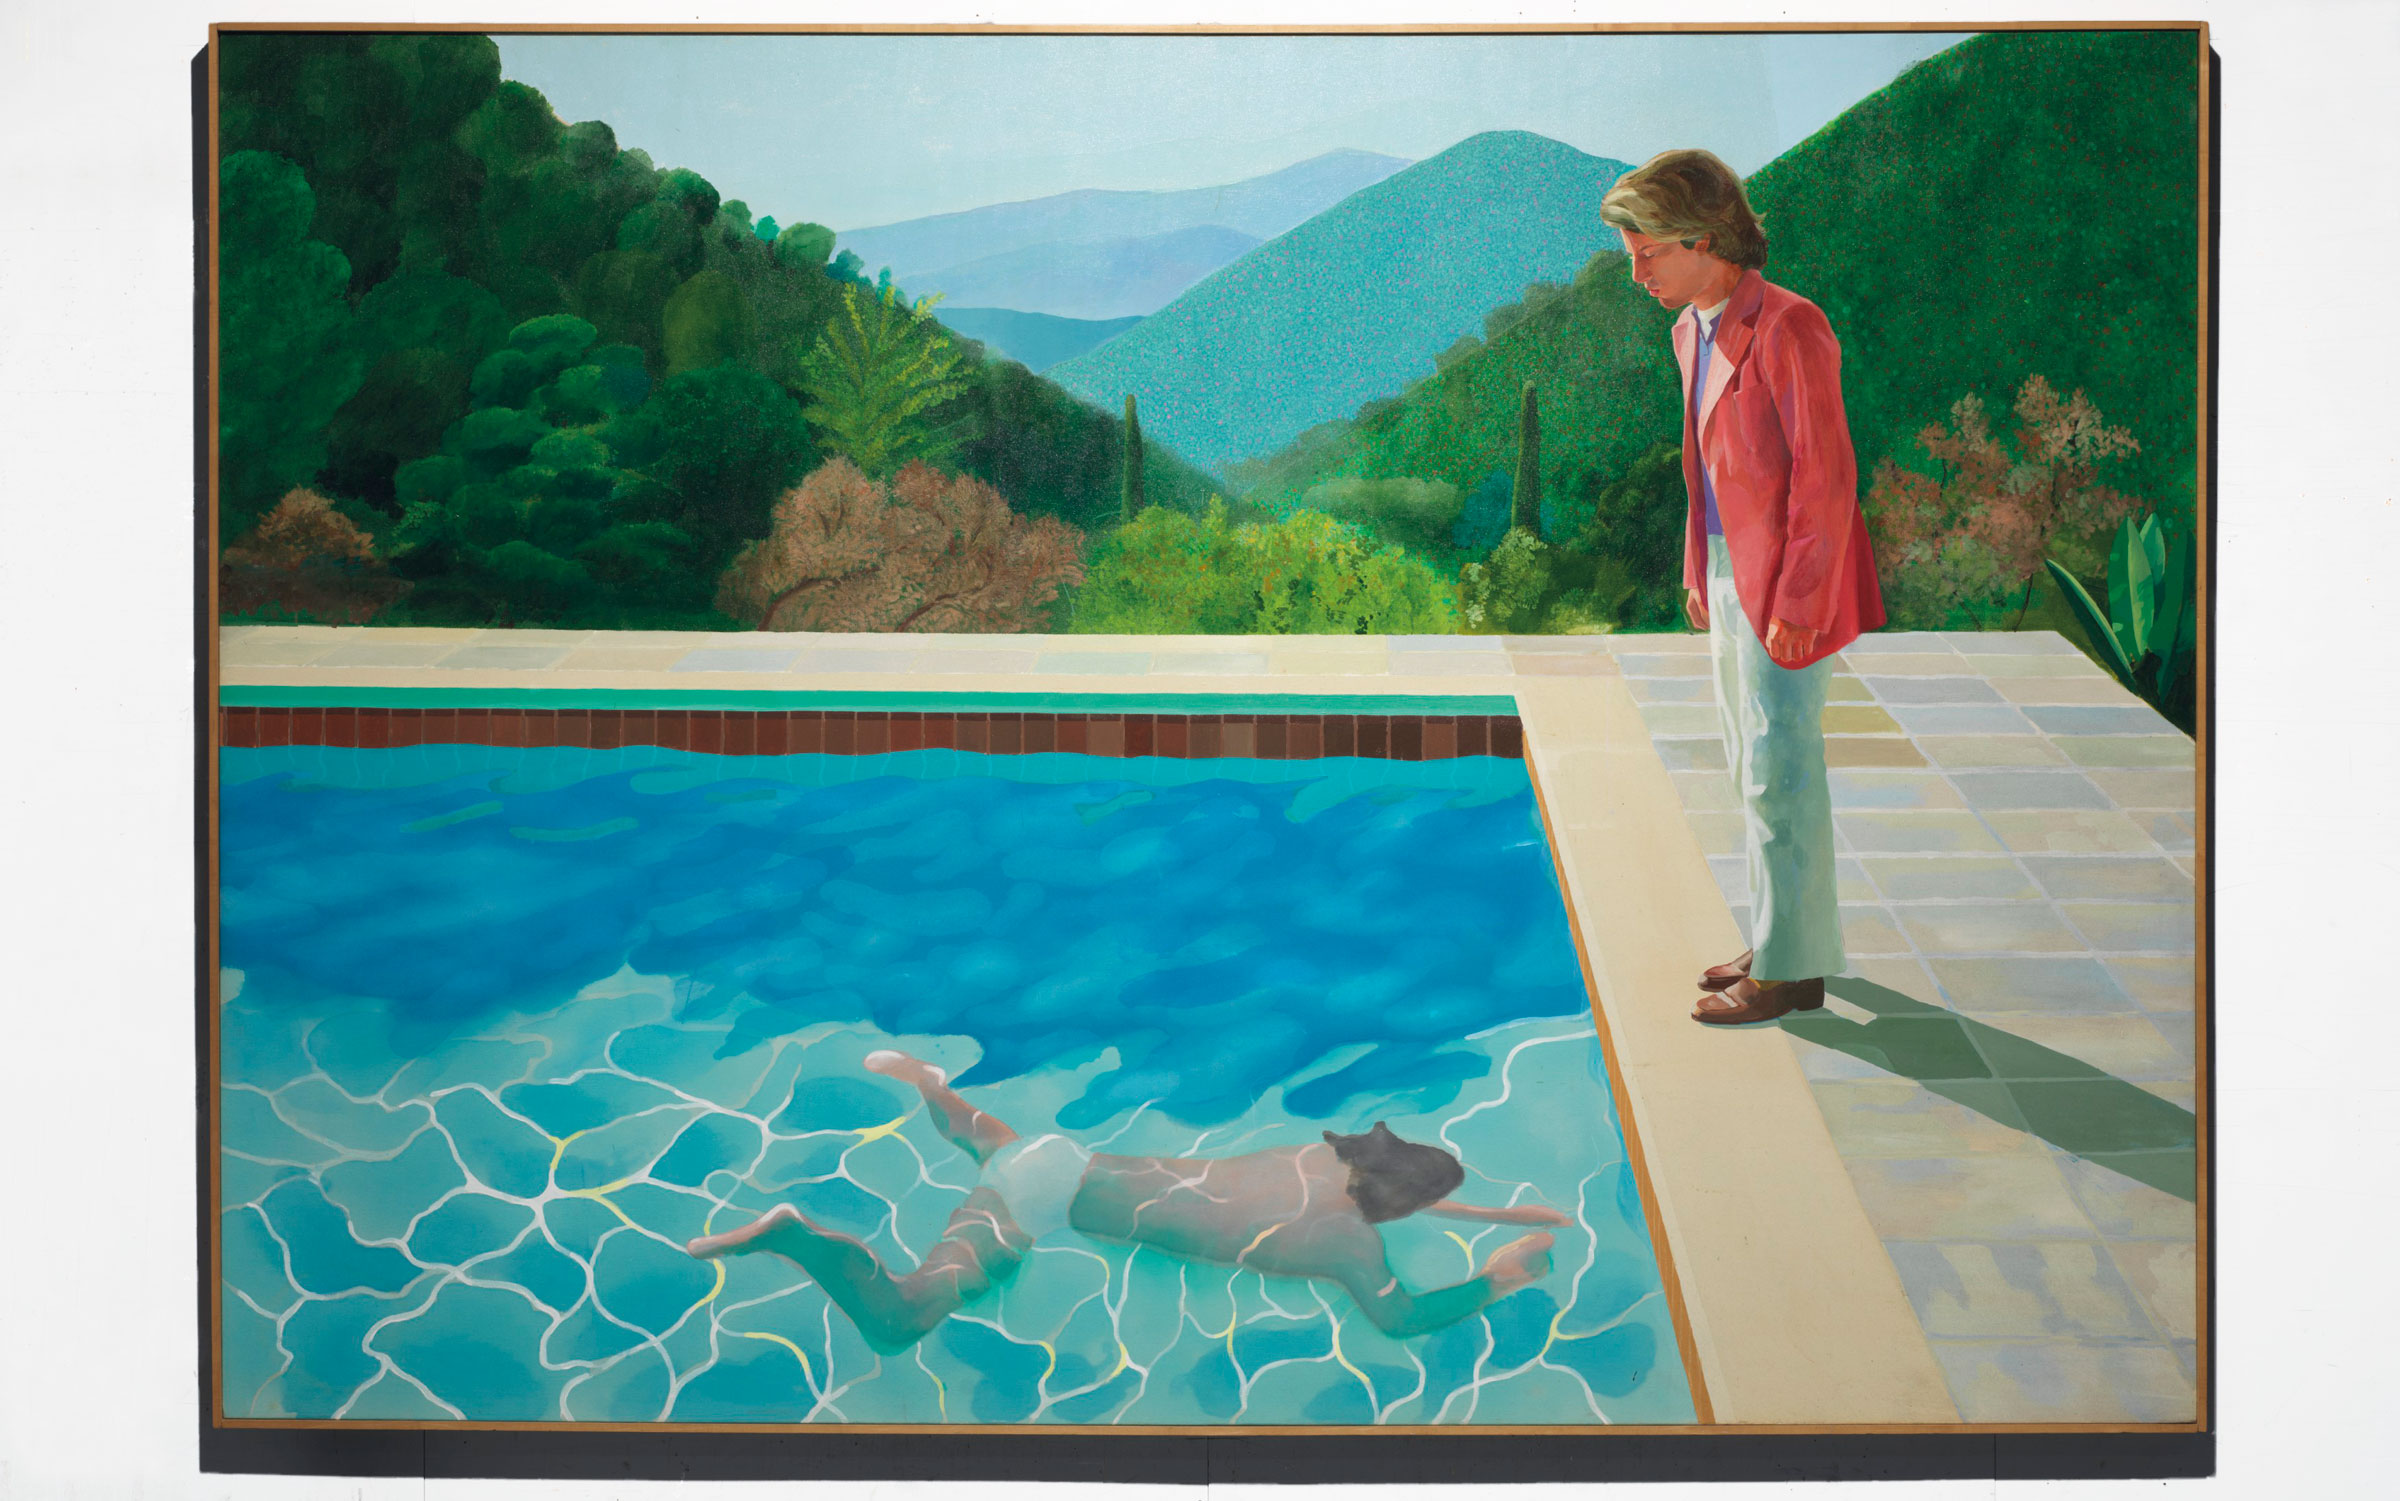 David Hockney's Portrait of an